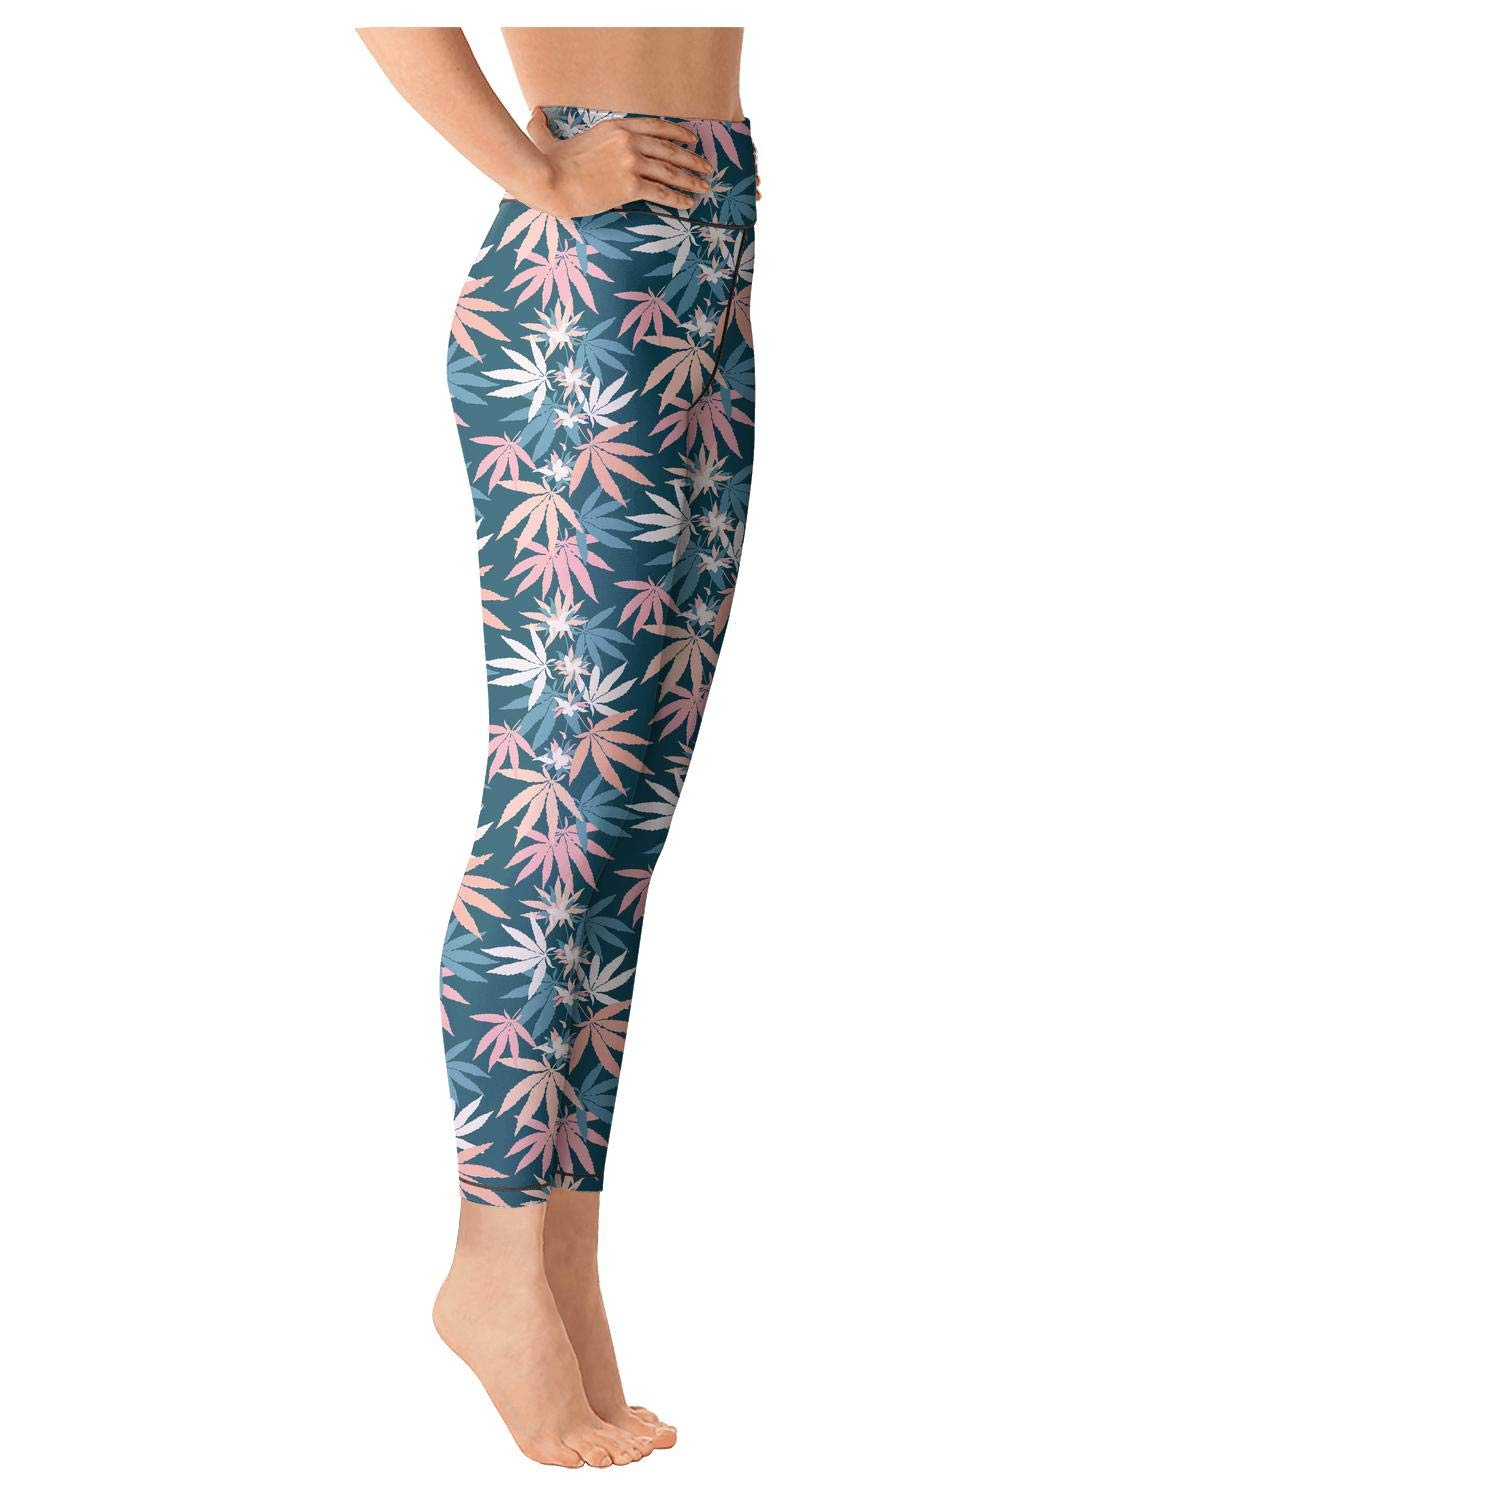 AugGThomas Womens pet Cannabis Painting Workout Running Leggins Tummy Control Gym Yoga Pants with Pockets